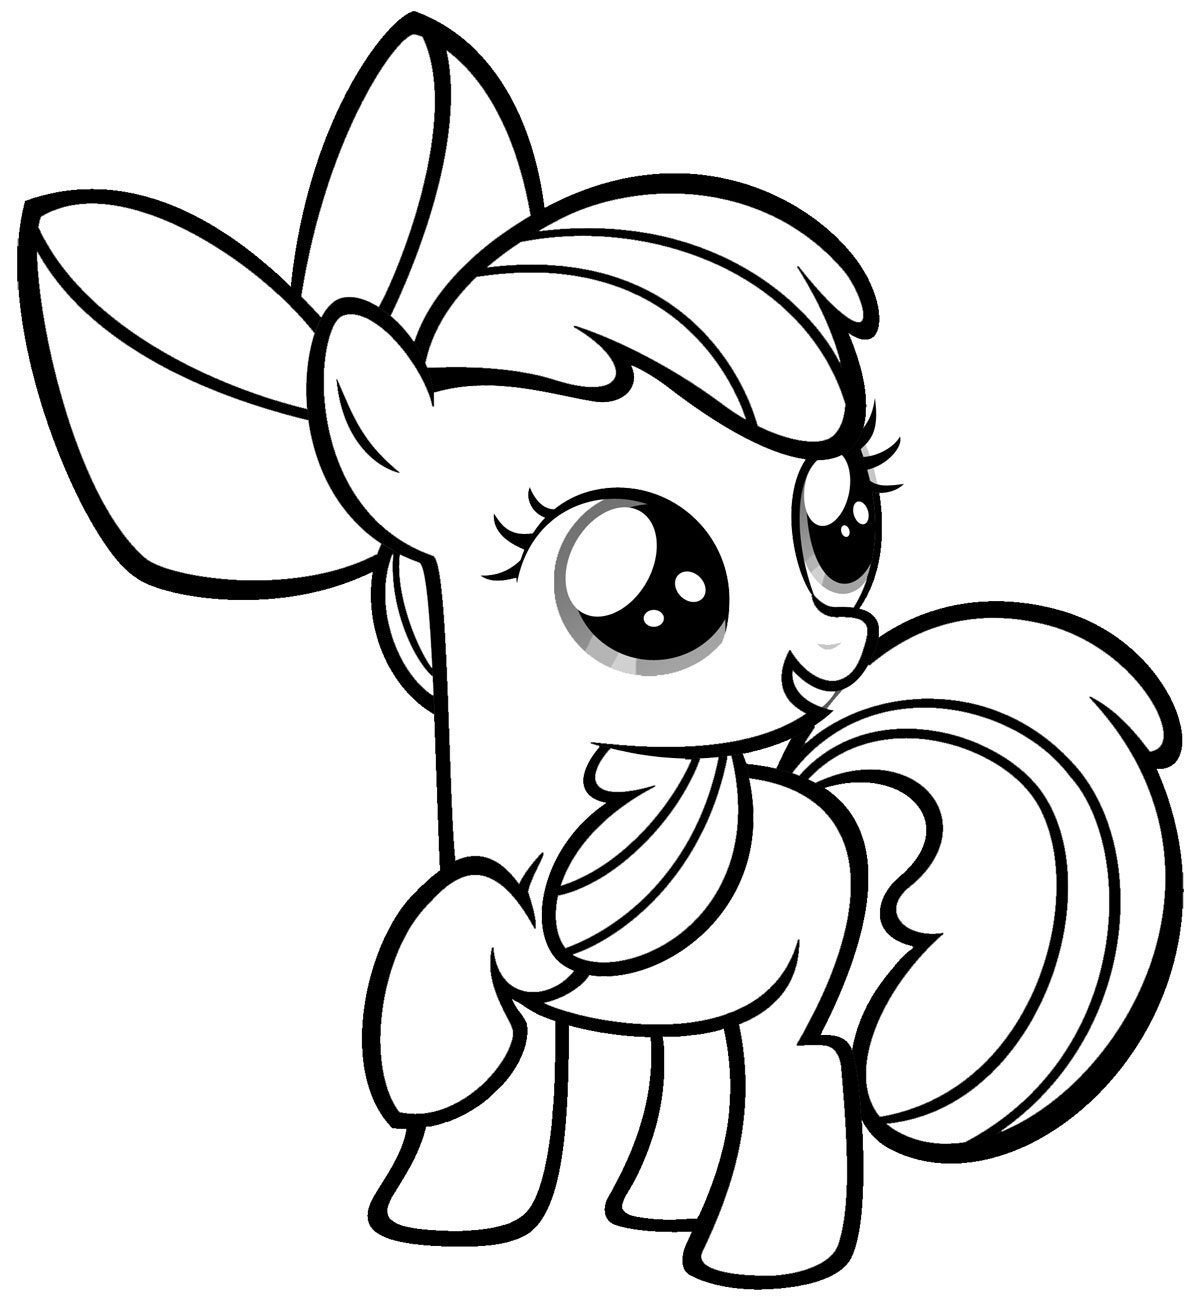 Free Printable My Little Pony Coloring Pages For Kids - Coloring Kids